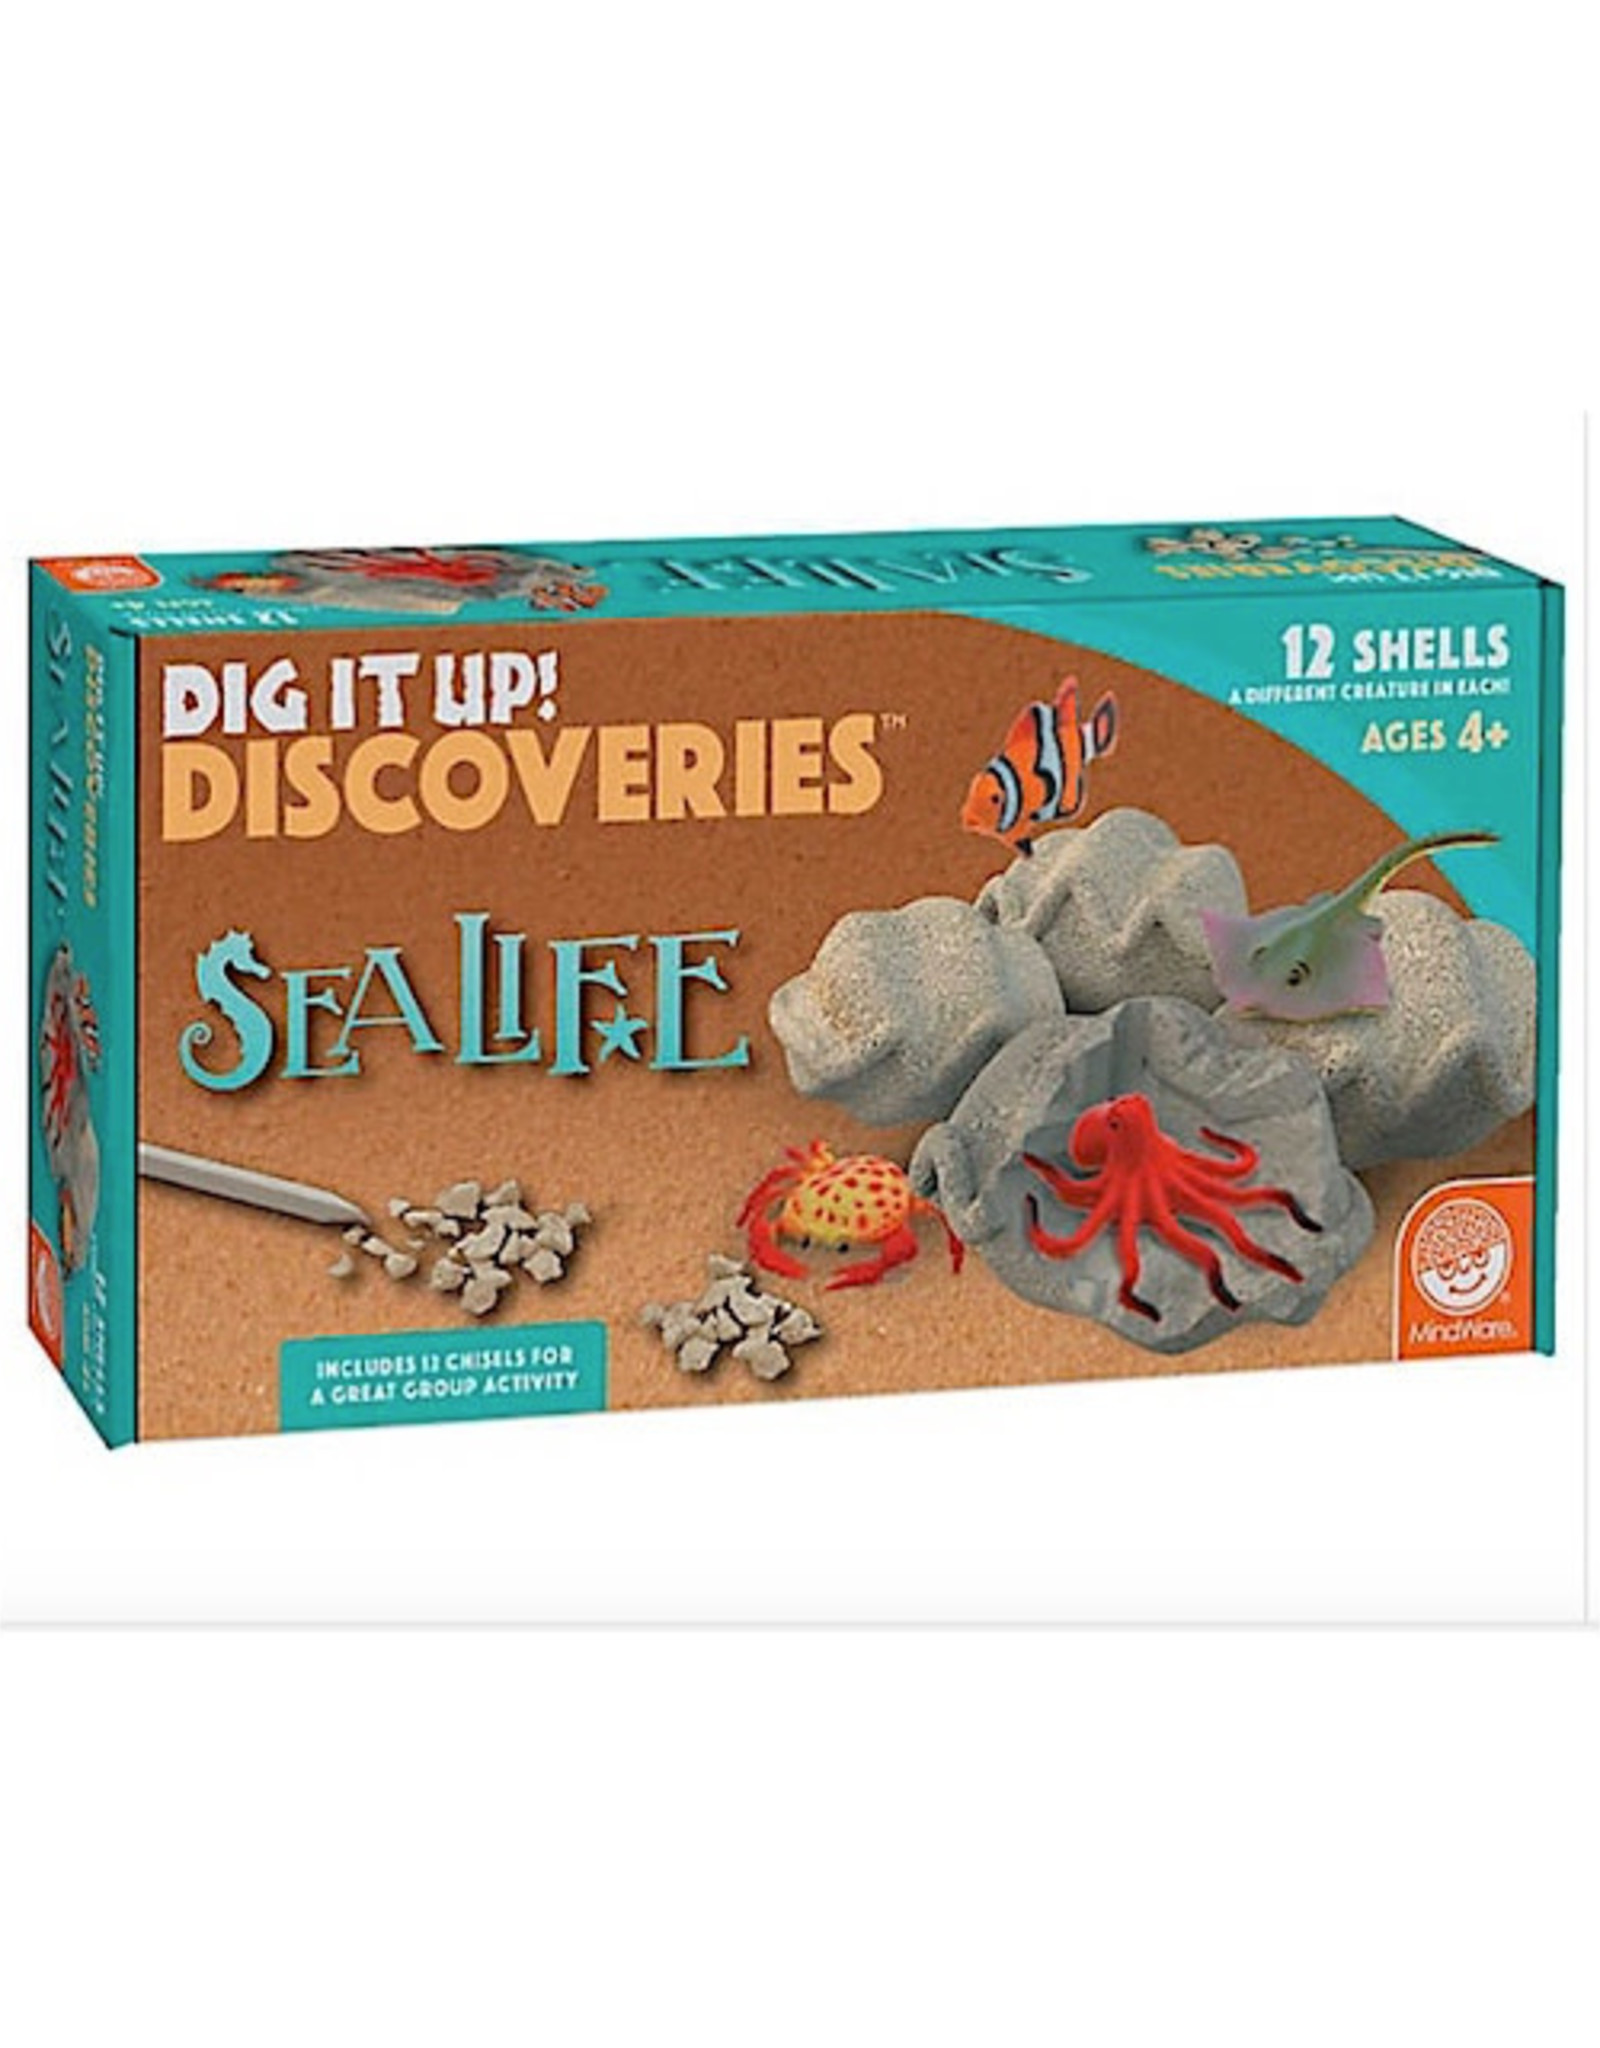 Mindware DIG IT UP! DISCOVERIES SEA LIFE